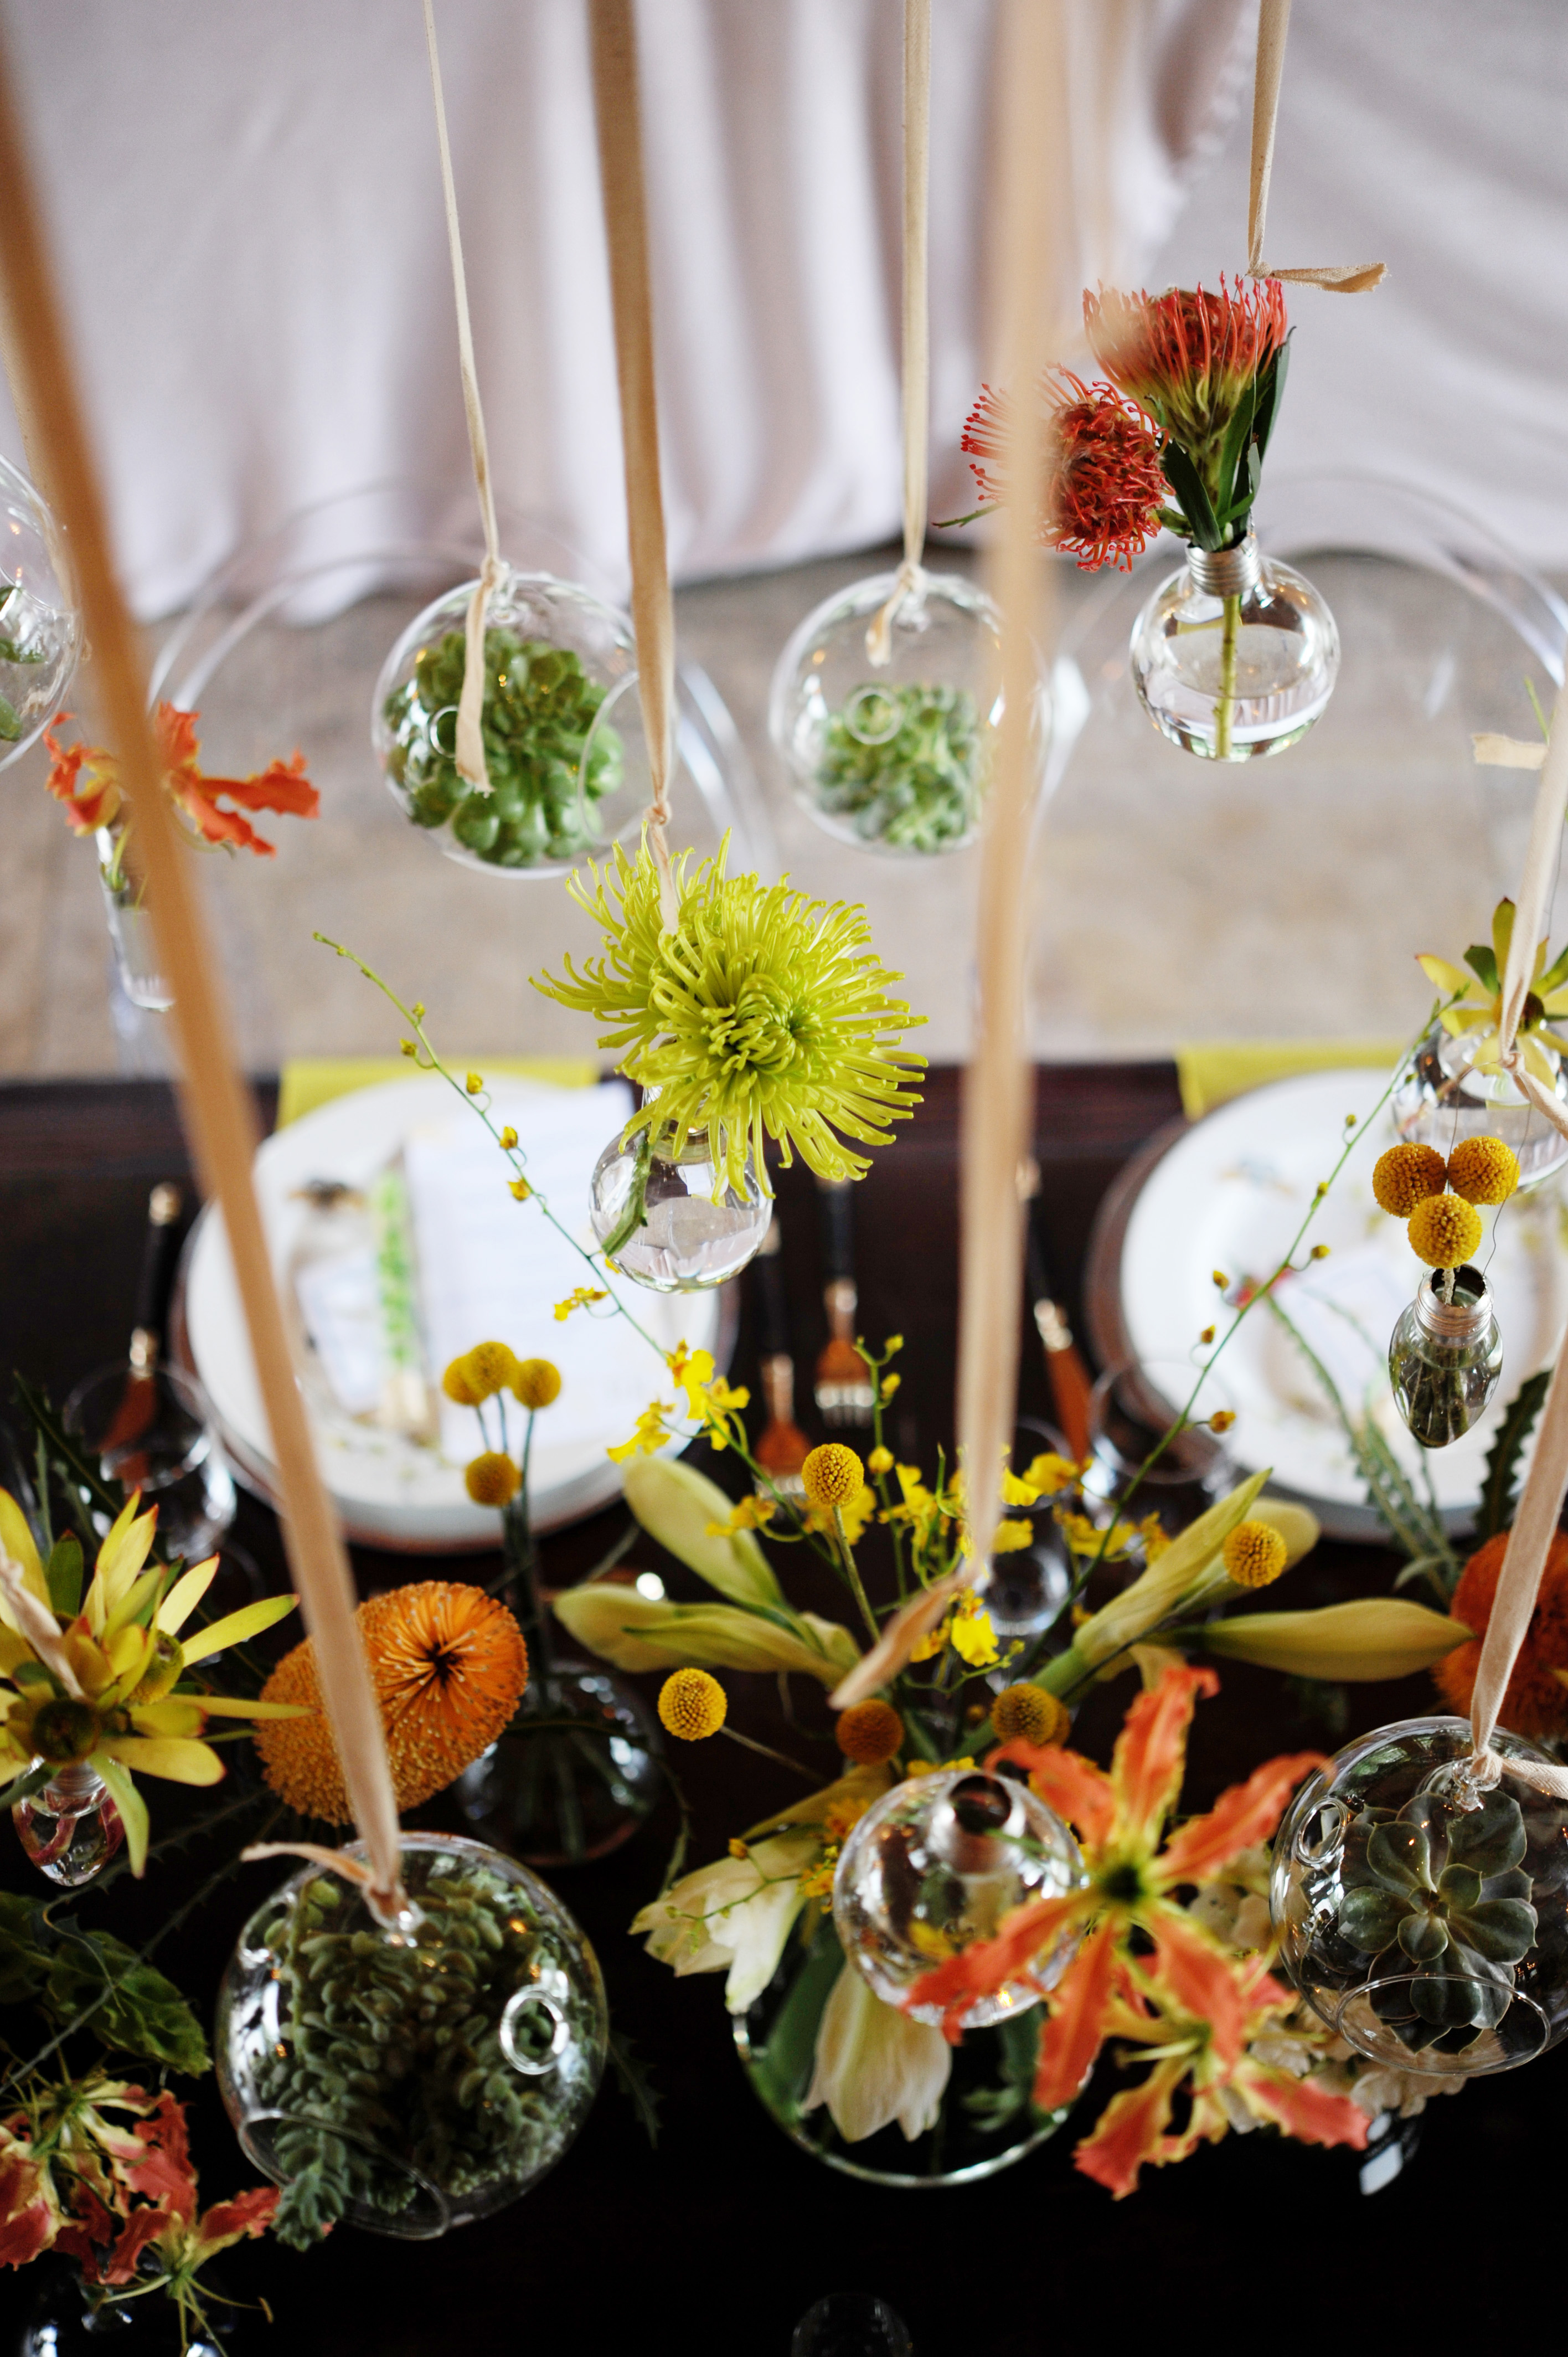 Test tube the treasured petal blog in the glass rare and wonderful botanicals reviewsmspy